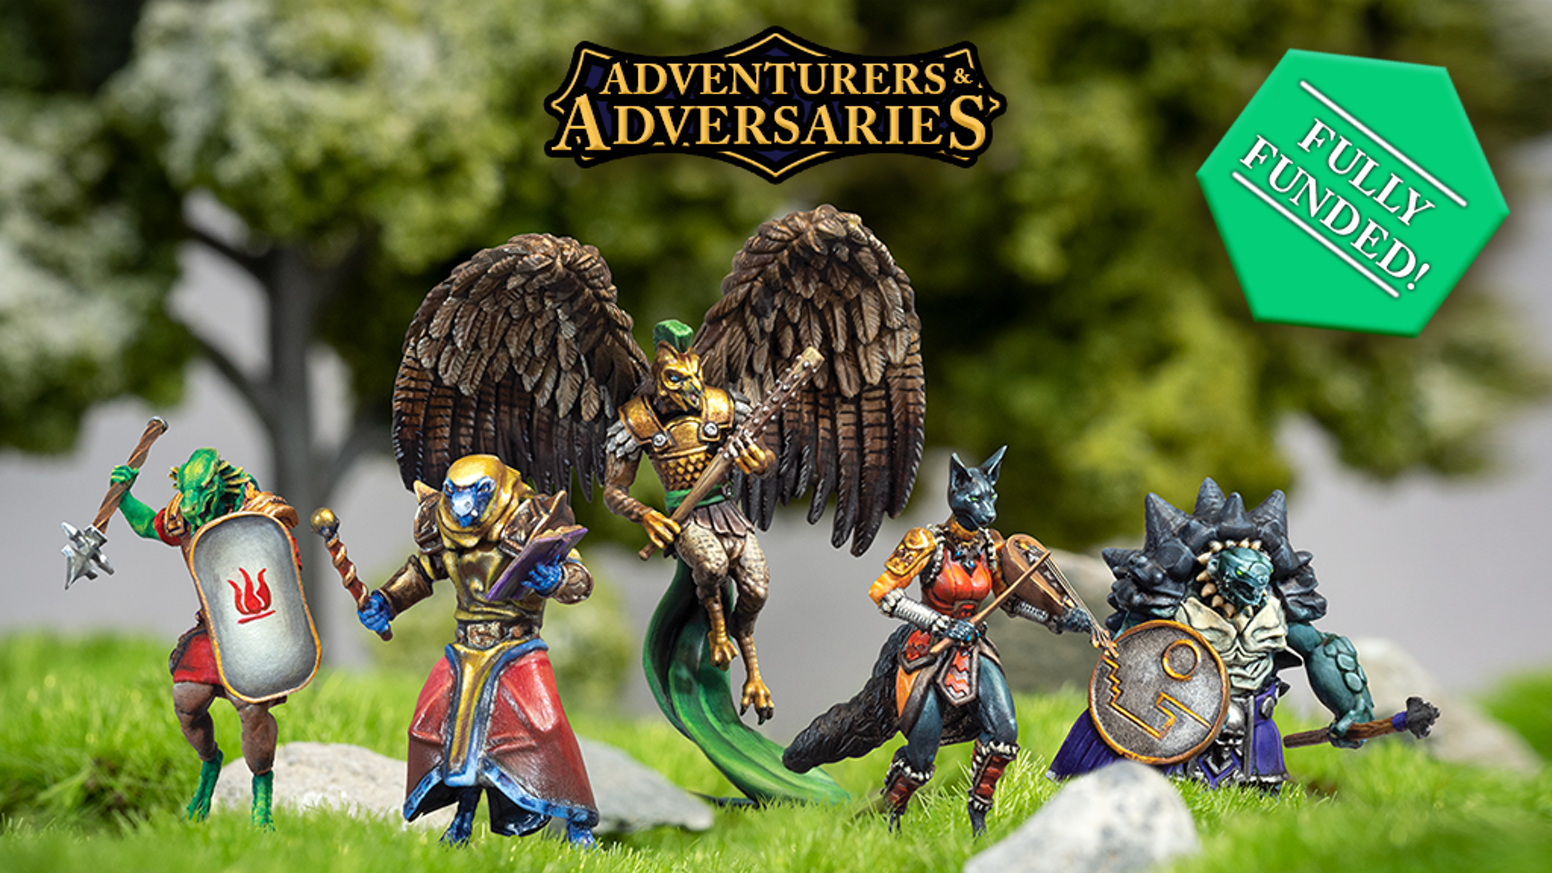 Adventurers & Adversaries Wave 2, Modular Resin Miniatures for DND, Pathfinder and other RPGs